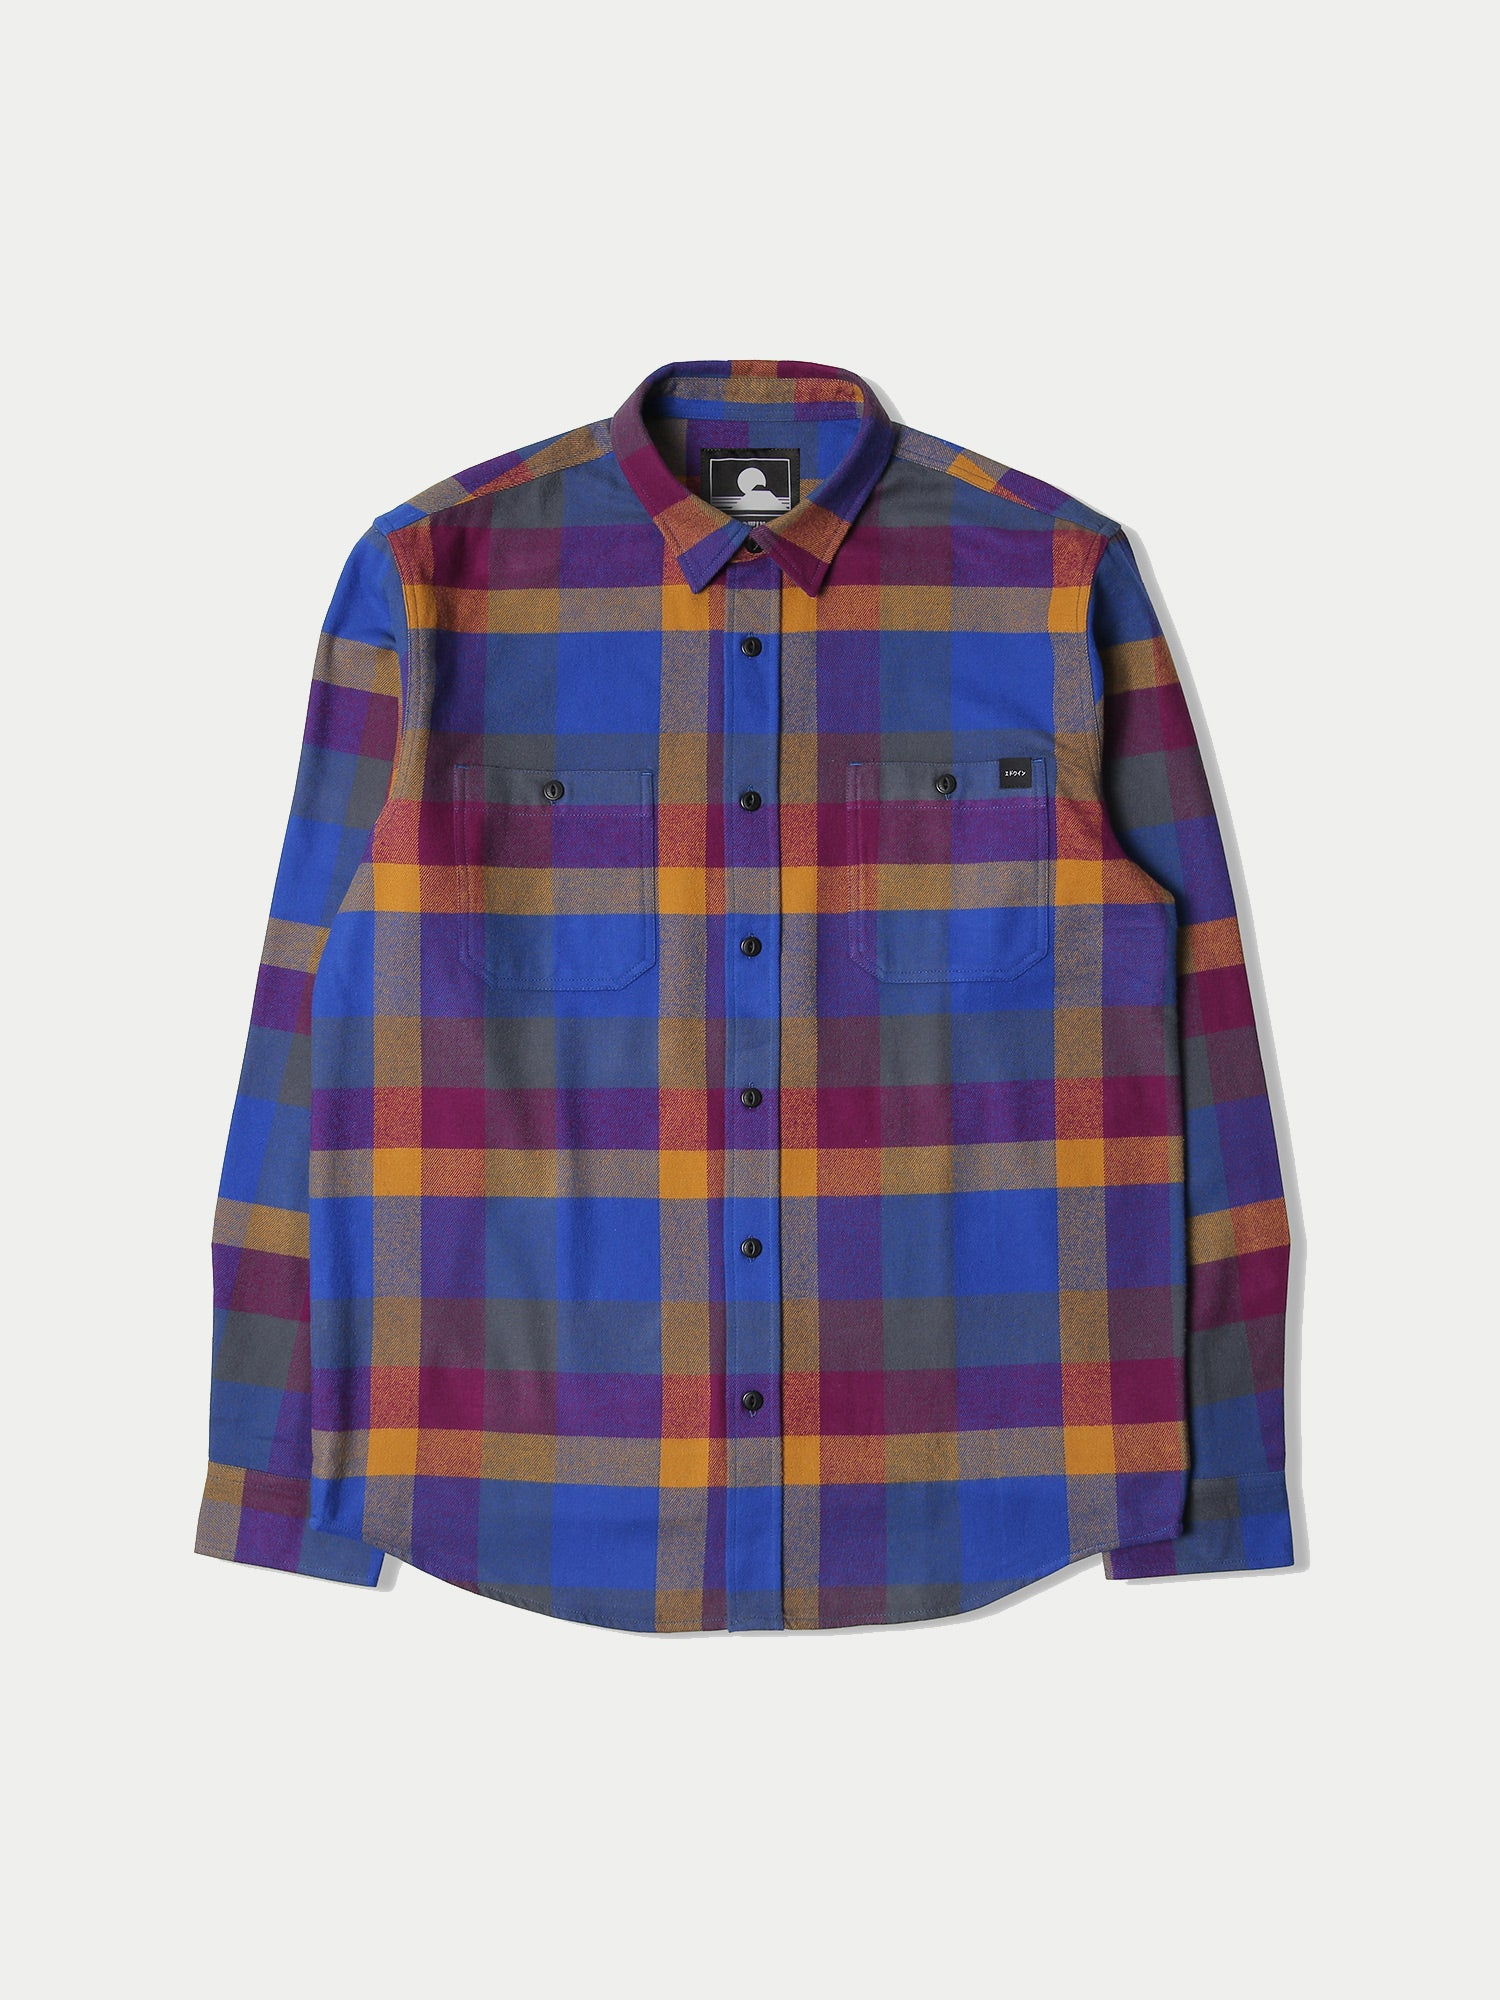 Edwin Labour Shirt (Dark Purple & Harvest Gold)22